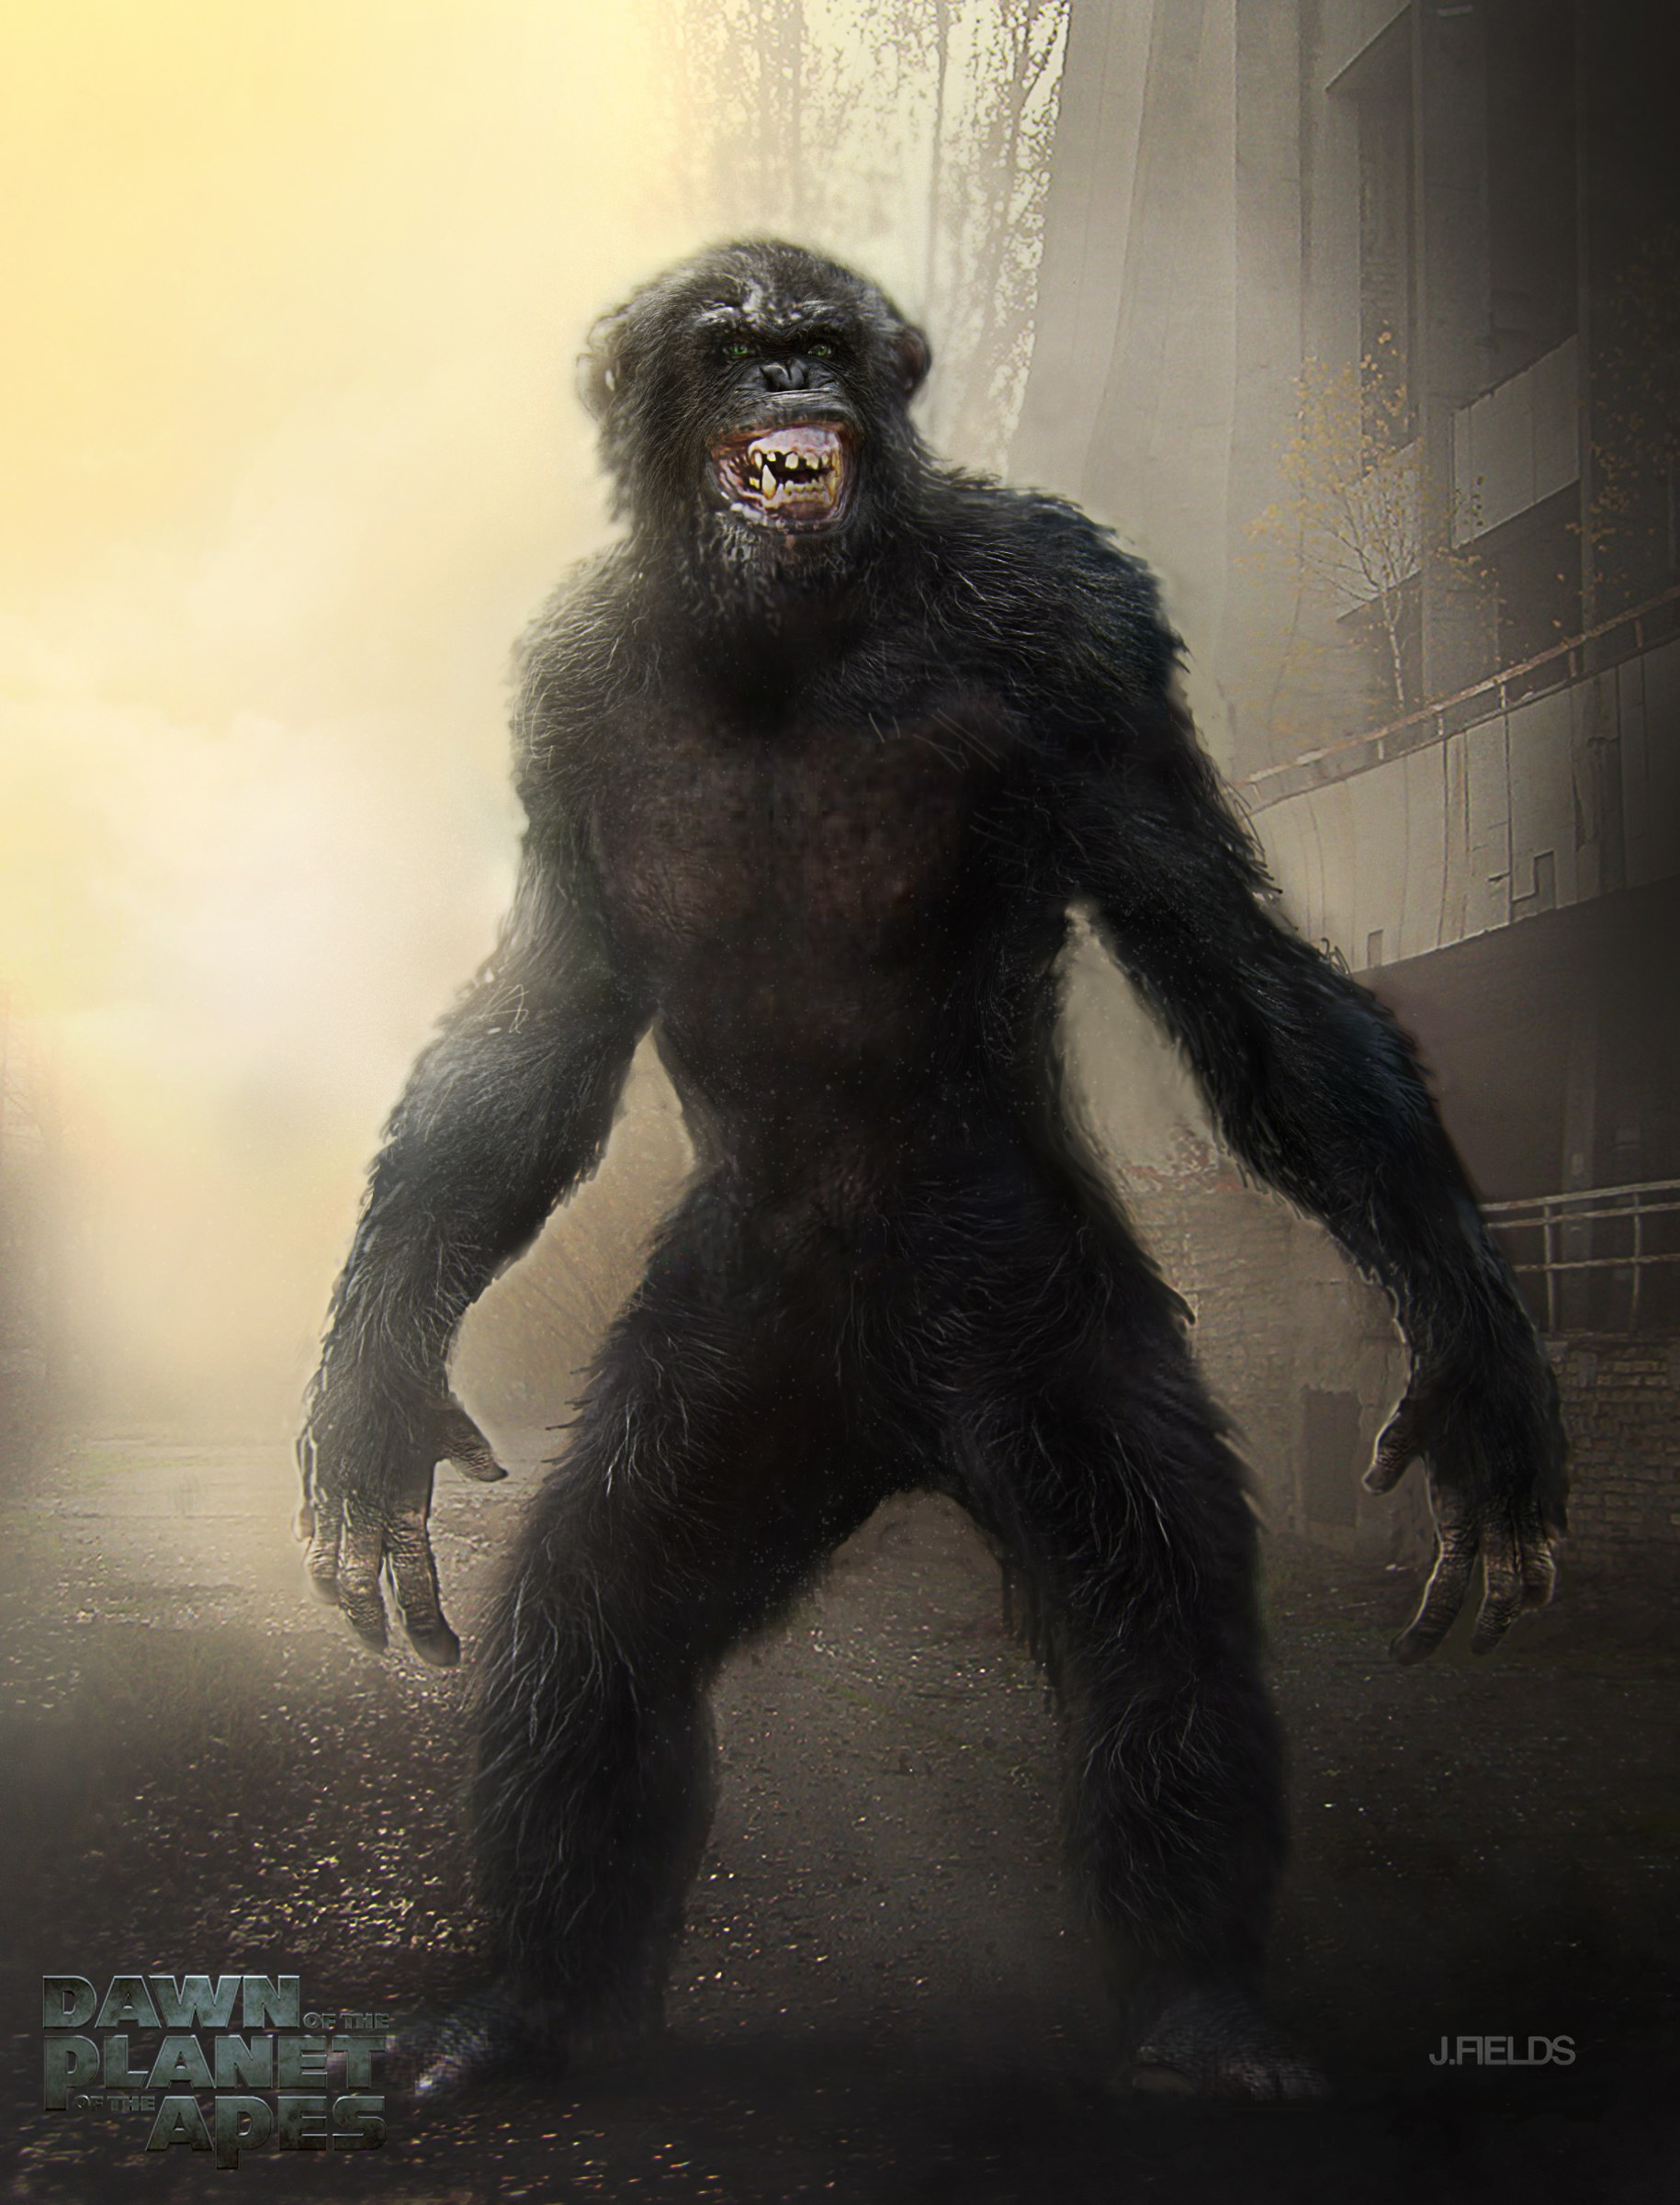 dawn of the planet of the apes concept art